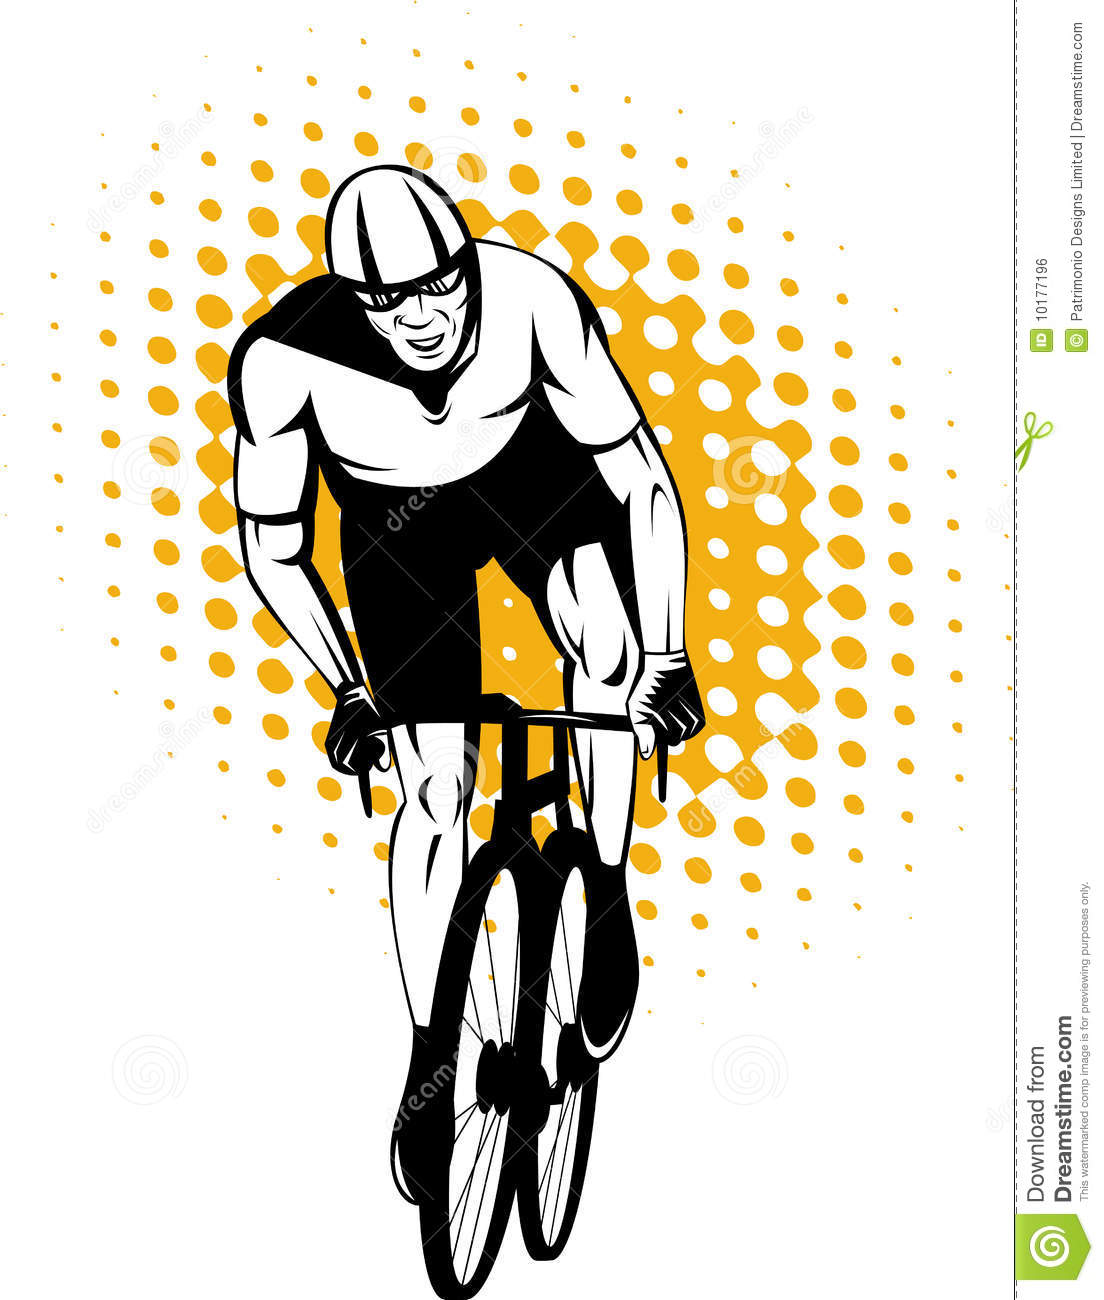 Cyclist Riding Racing Bicycle Stock Illustrations – 285 Cyclist ... for Racing Bicycle Clipart  545xkb